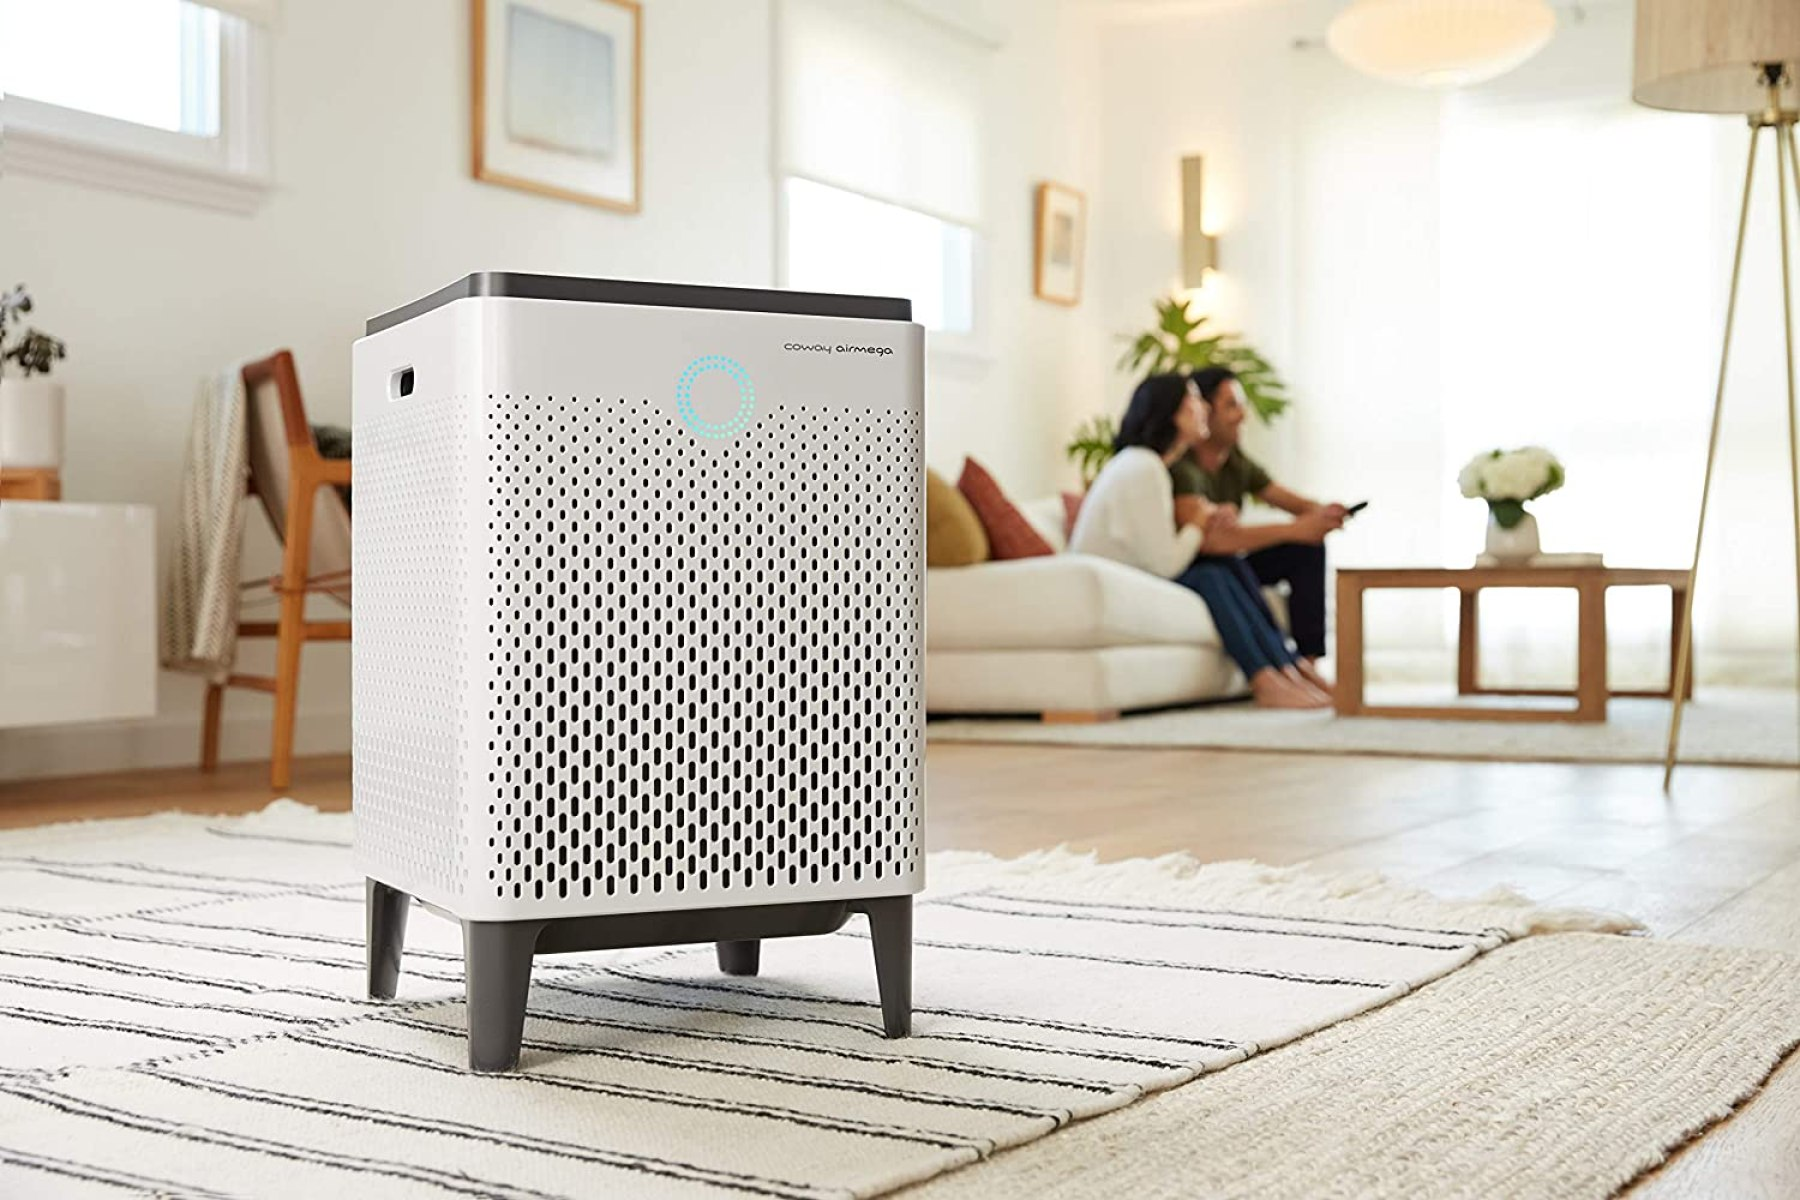 Best Smart Air Purifiers 2021: Top Reviews of WiFi, App-Enabled Units - Rolling Stone